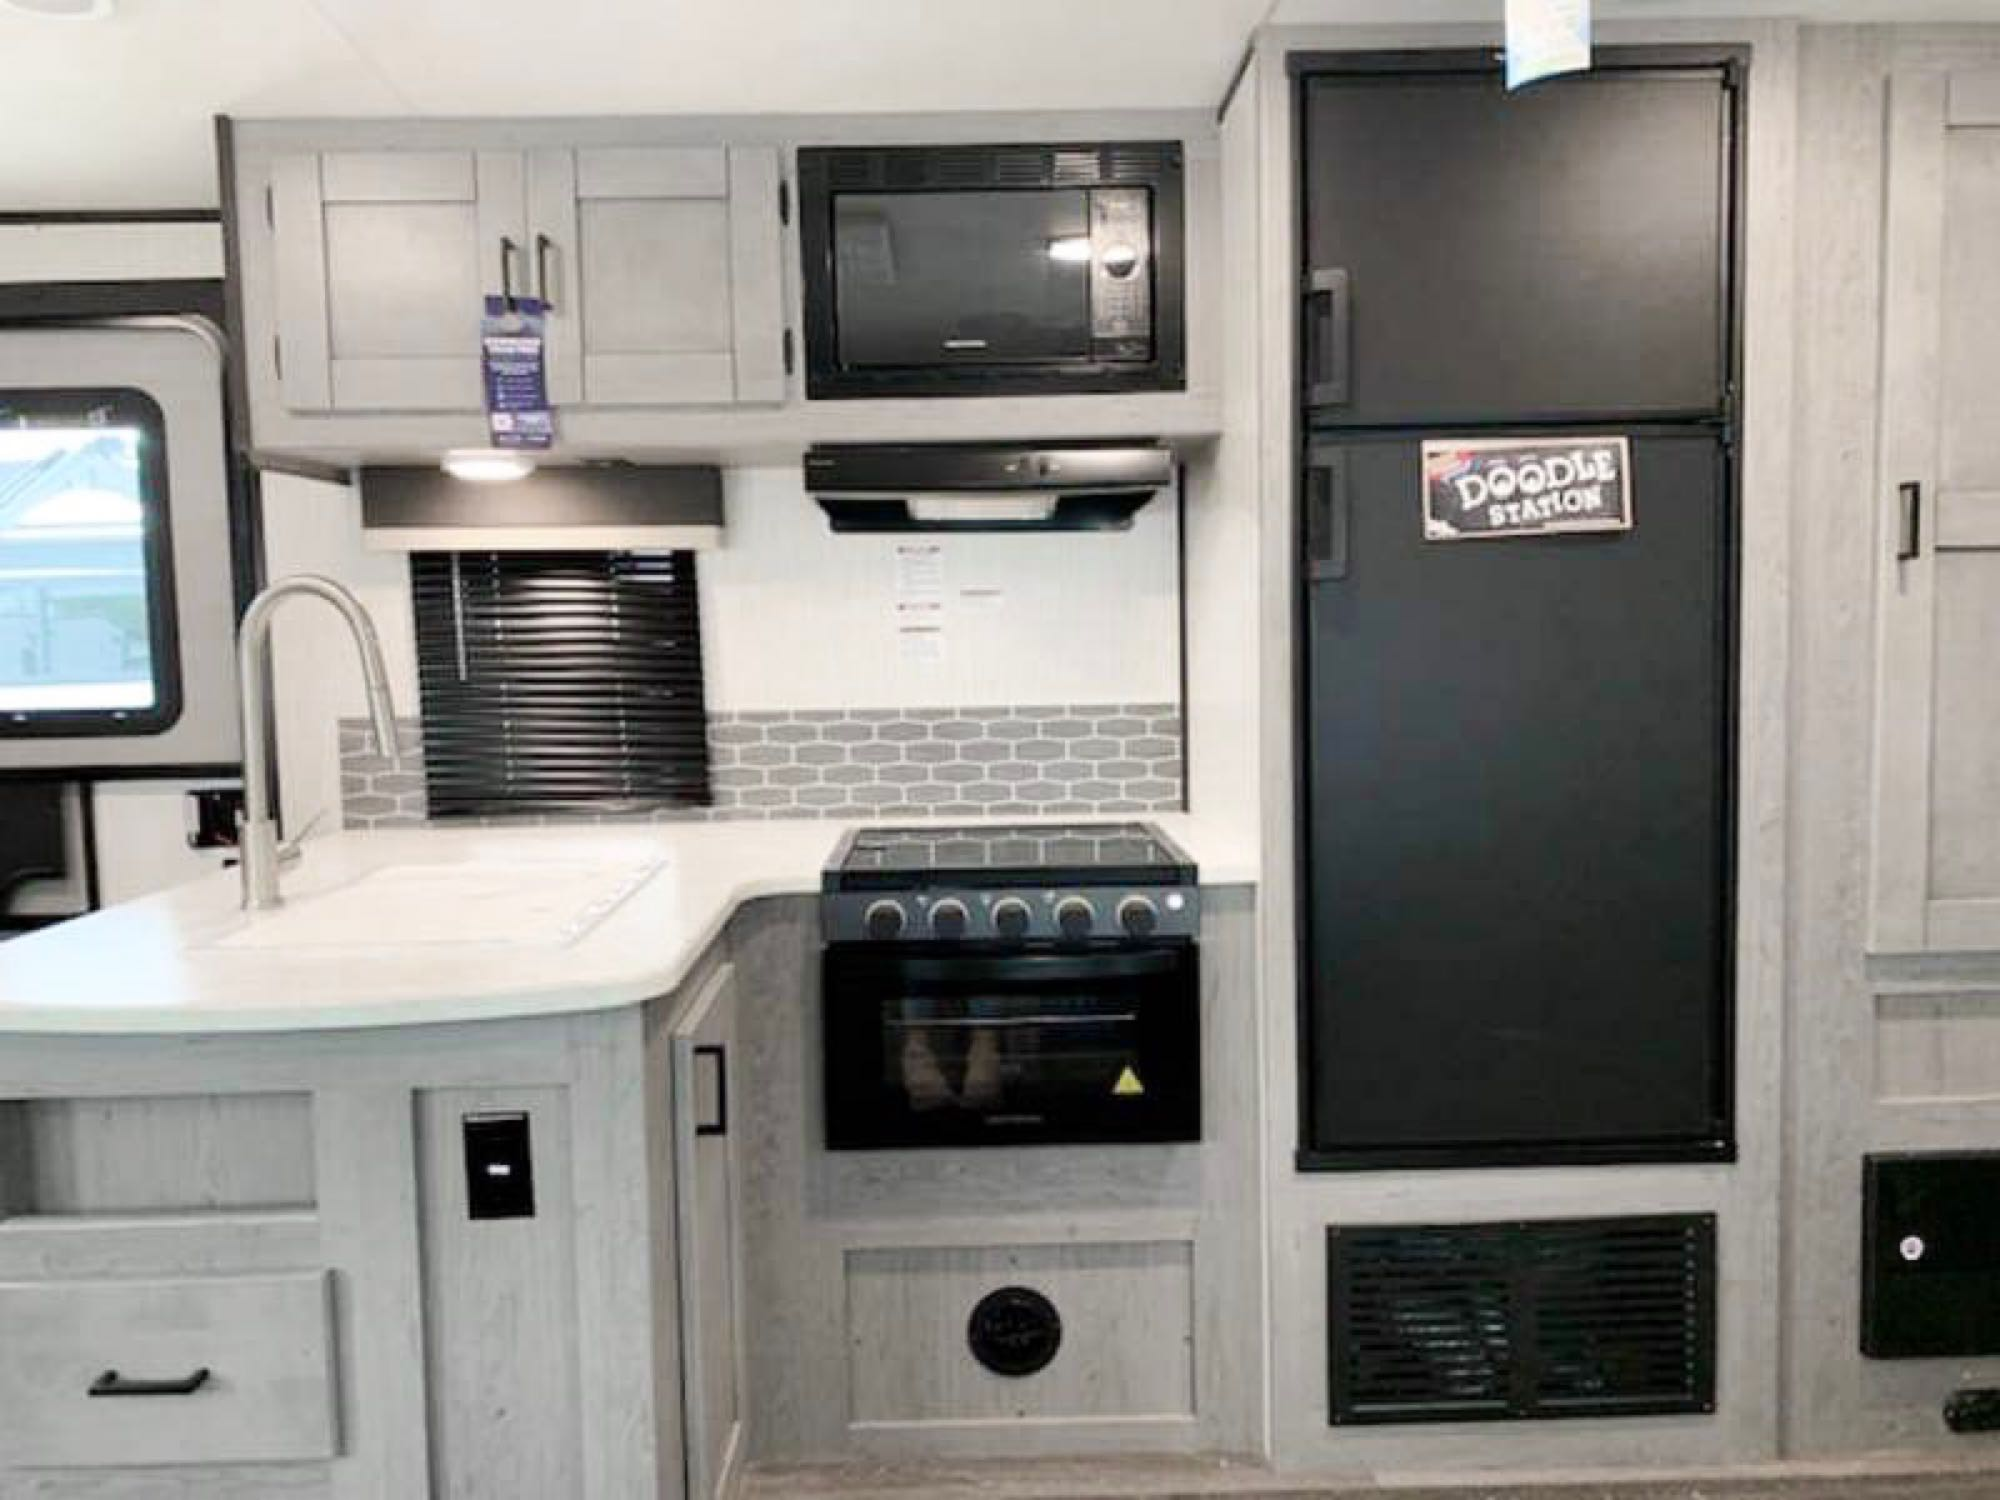 Feel right at home with a refrigerator/freezer, microwave and stove/oven! Sink has a pullout faucet. Heartland Mallard 2021